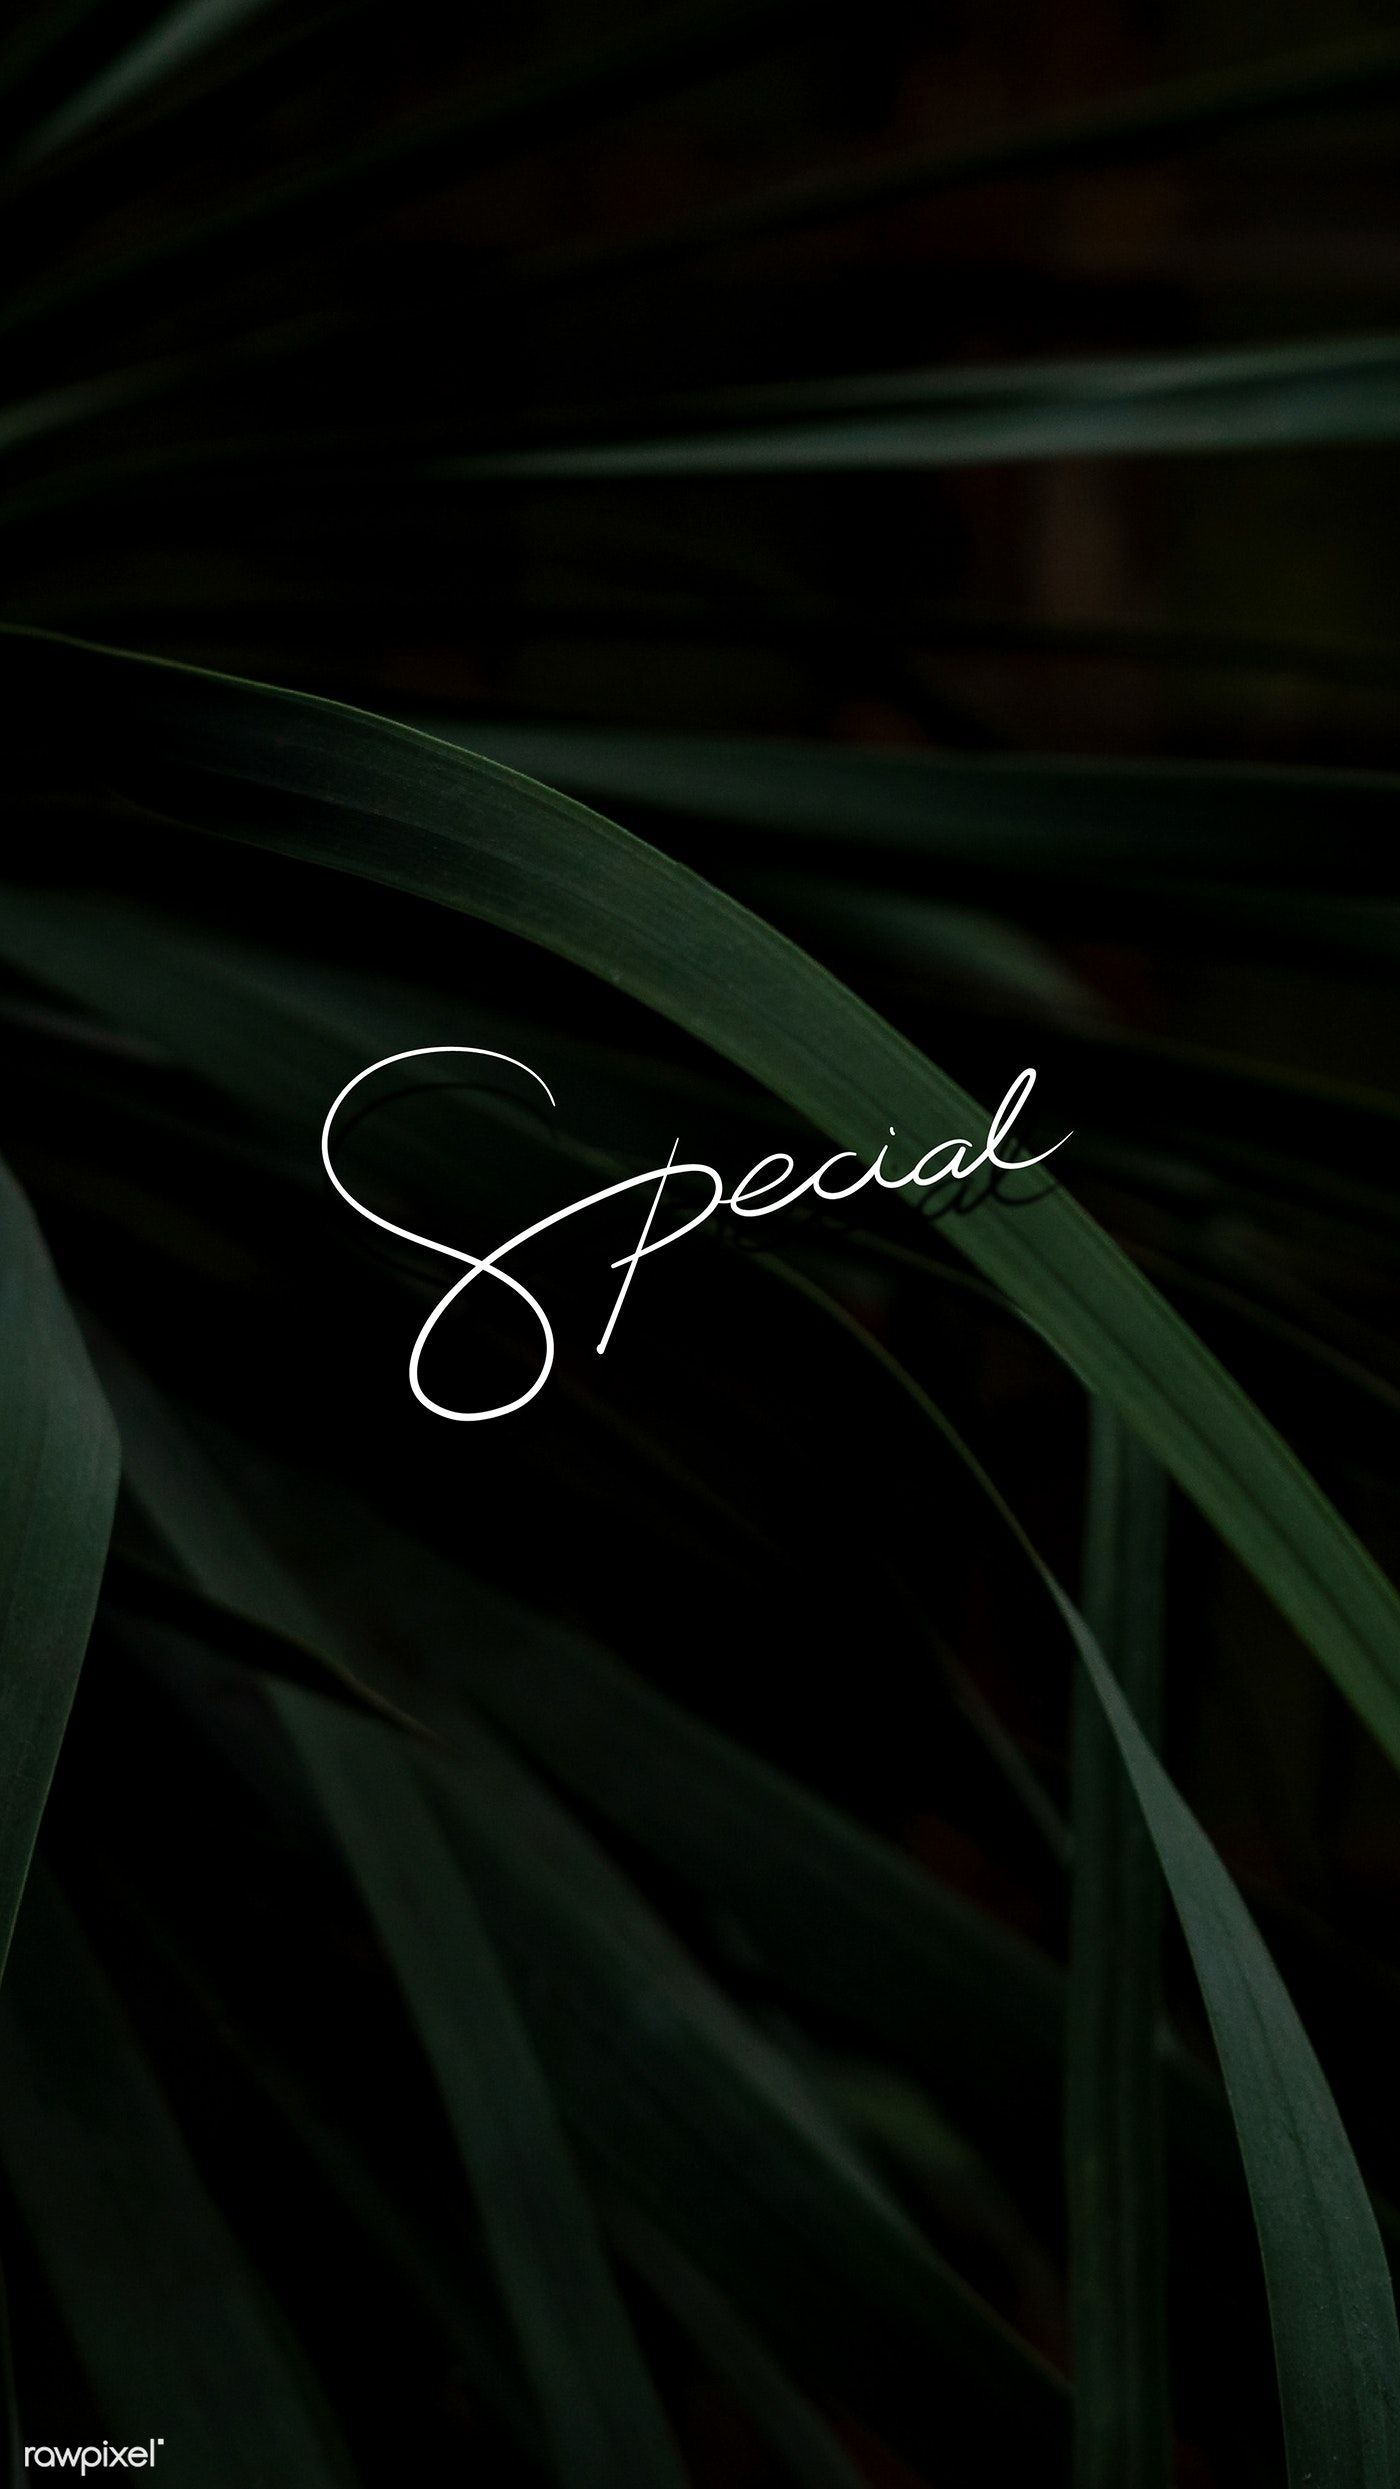 Special Text On A Leafy Background Mobile Wallpaper Free Image By Rawpixel Com Green And Black Background Phone Wallpaper Design Black Background Wallpaper